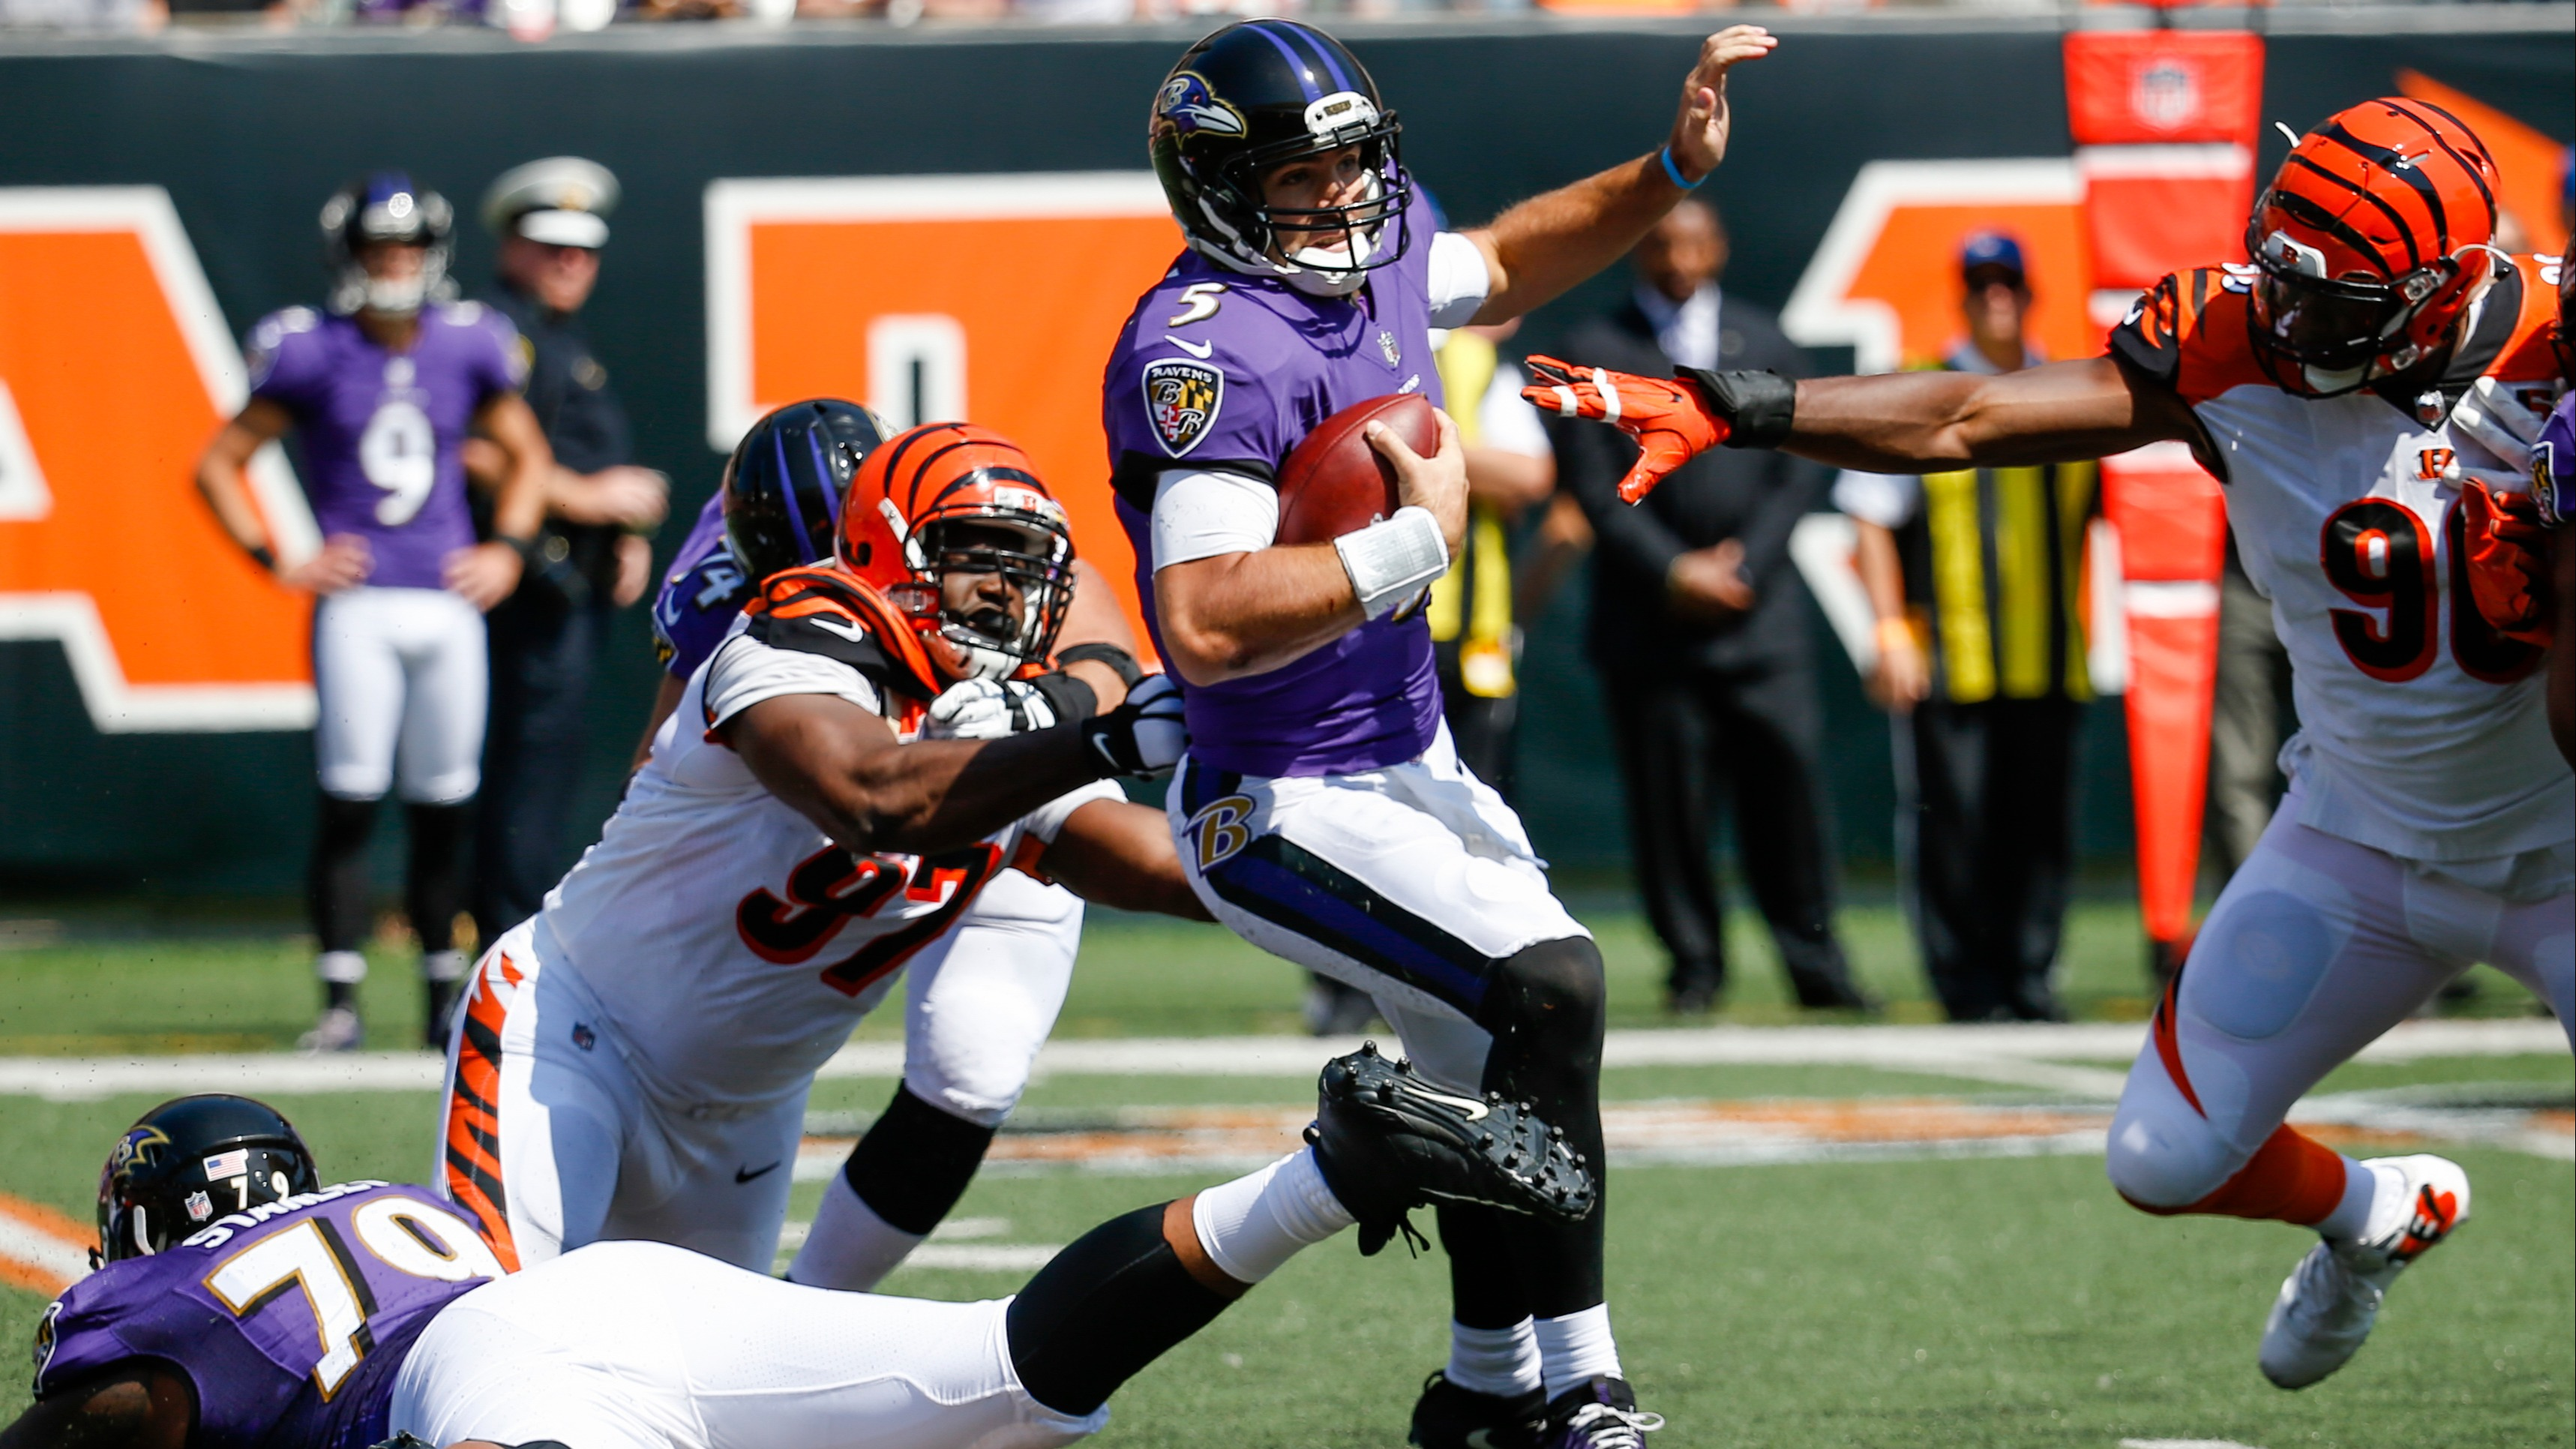 e2606ae1 Ravens at Bengals betting preview: Line hovers around pick 'em